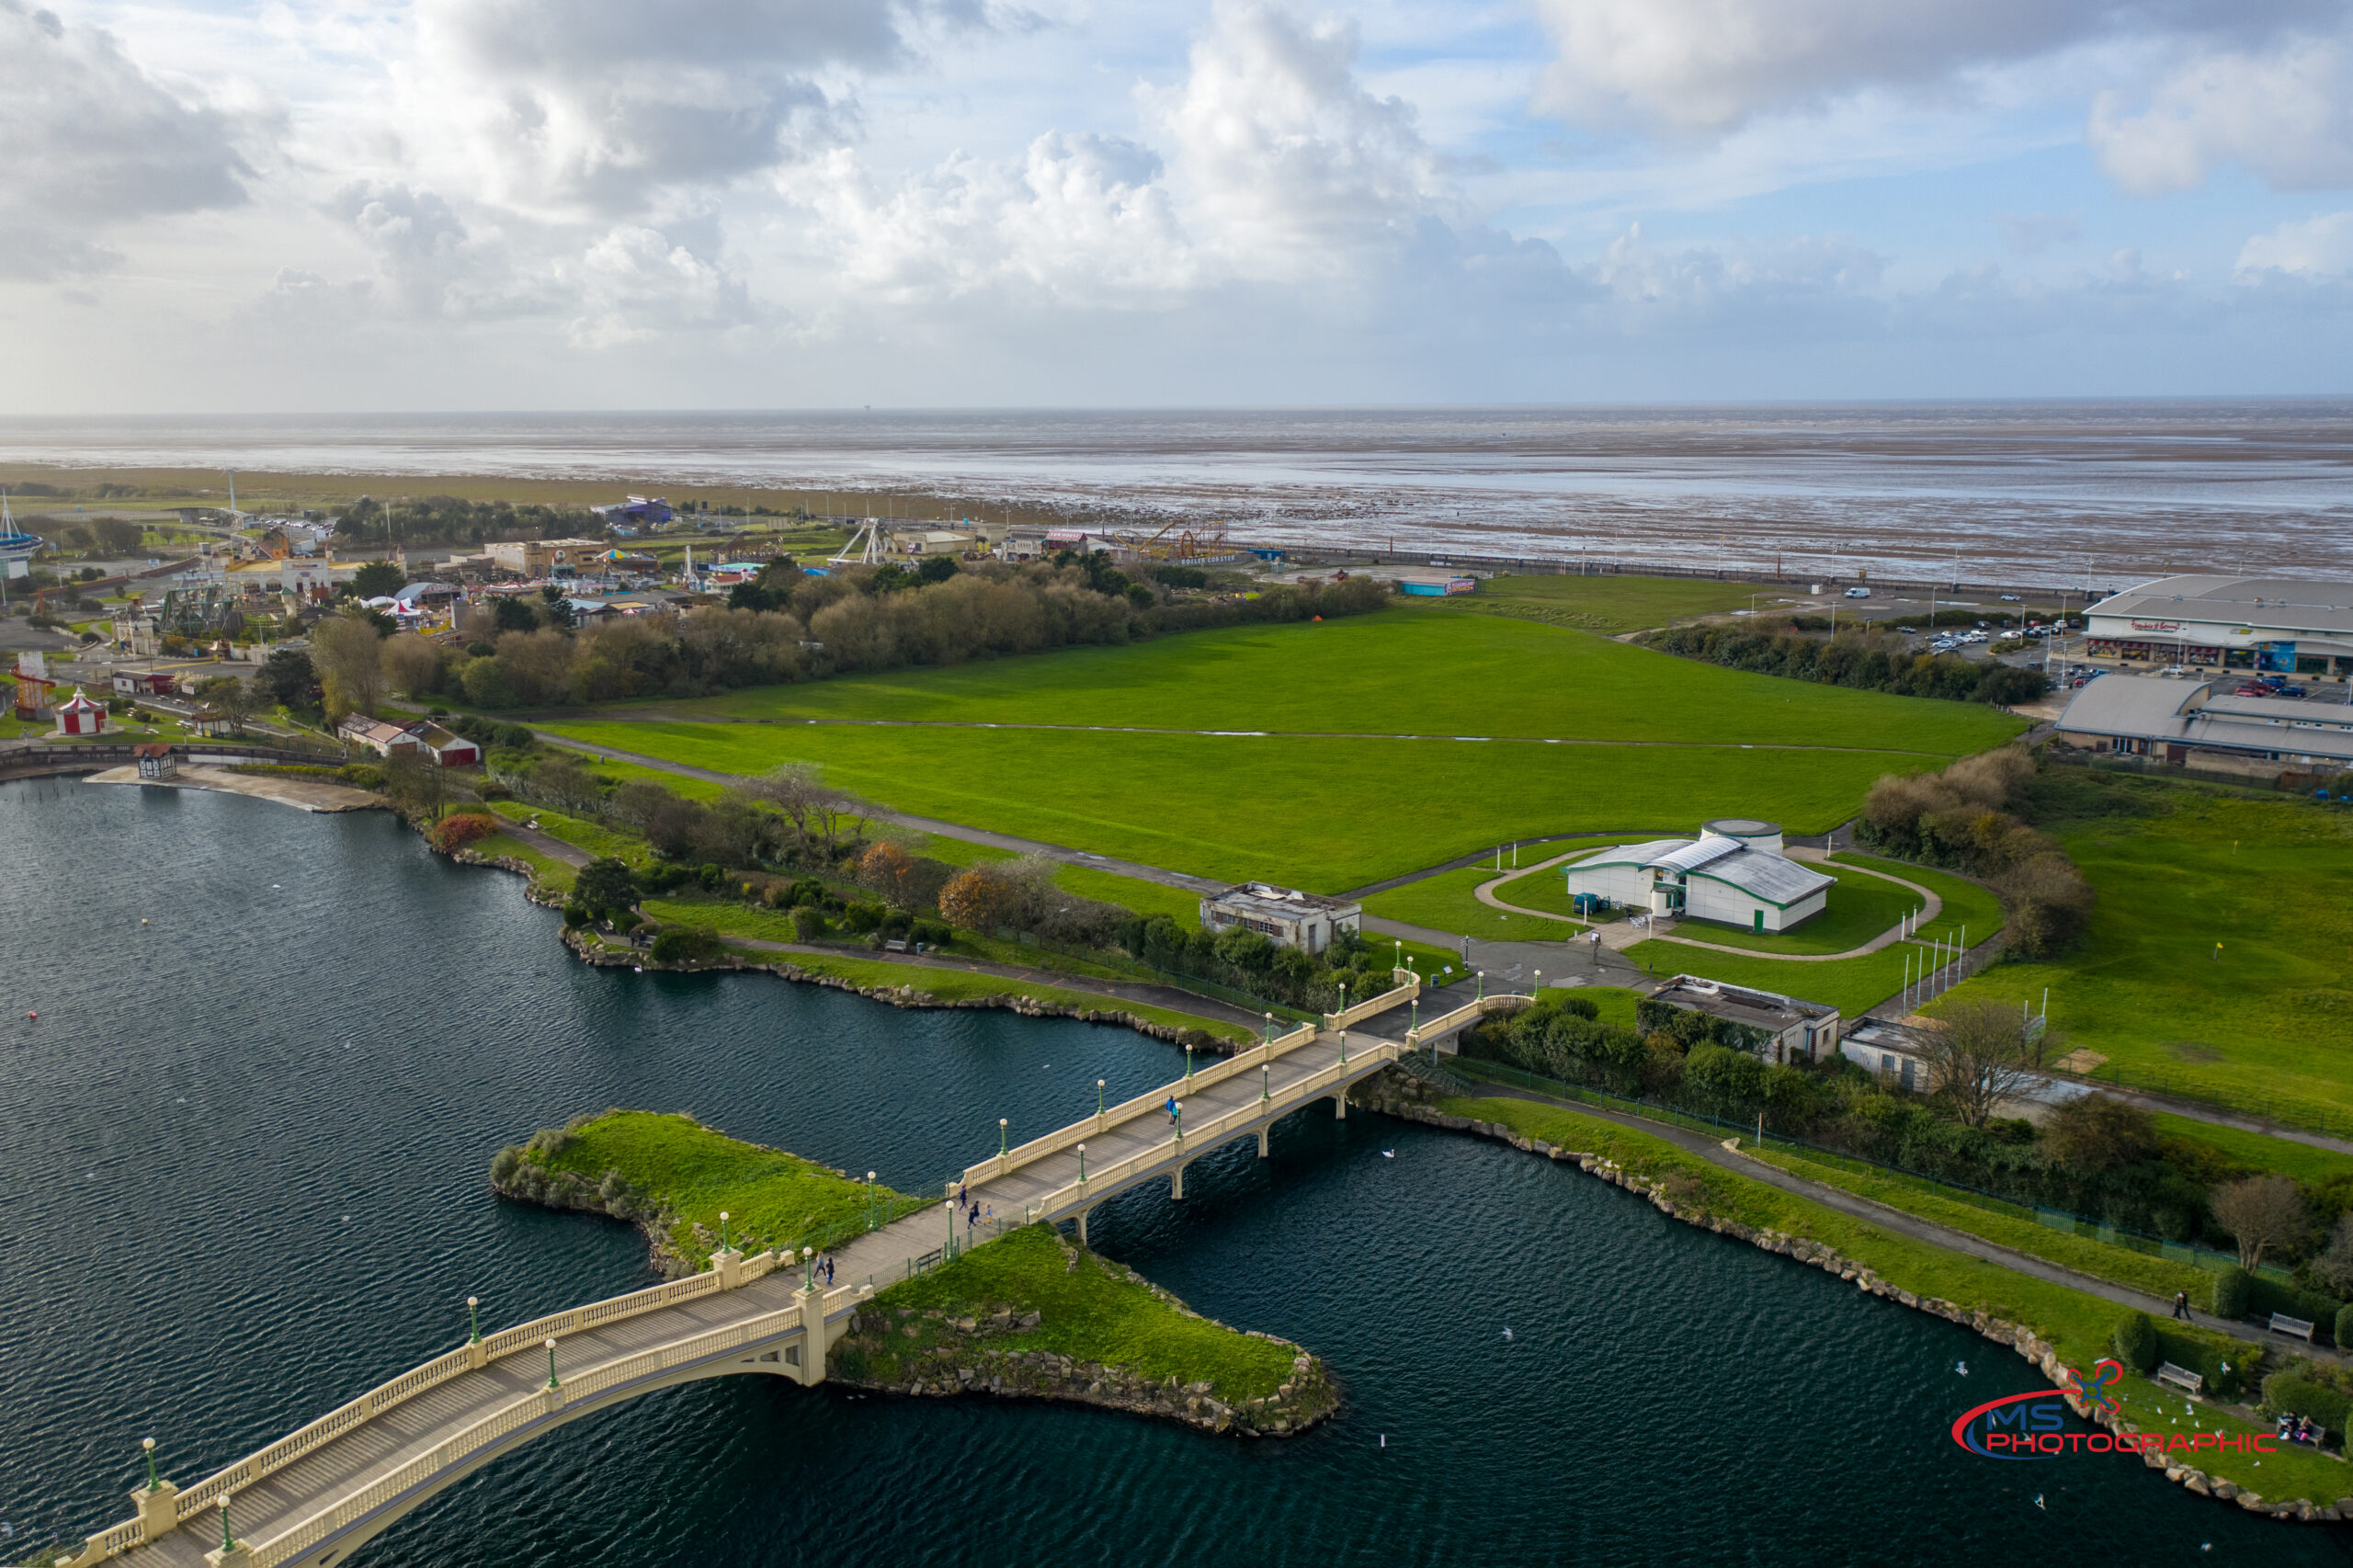 Princes Park in Southport. Photo by MS Photographic